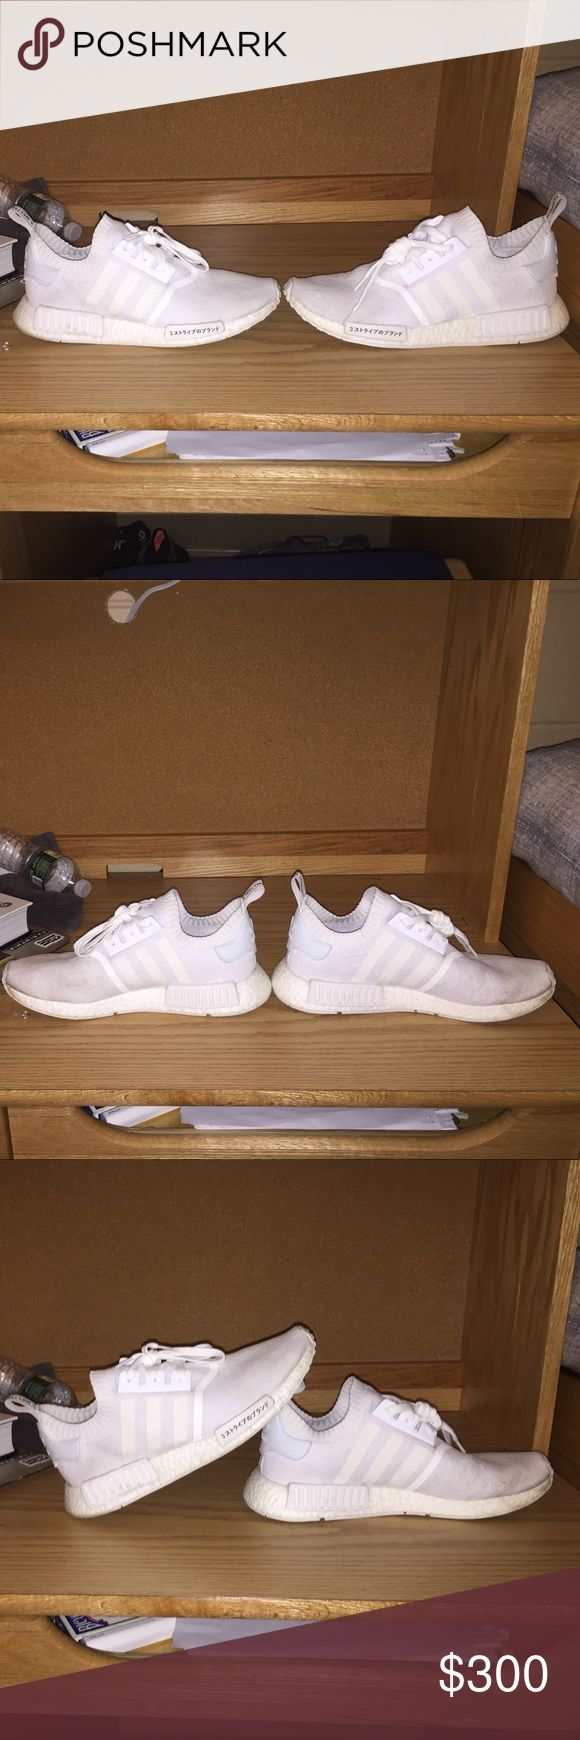 "Adidas NMD R1 PK ""Japan Boost"" Adidas NMD R1 PK ""Japan Boost"" - Triple White. Have been worn to walk to class and on special occasions. In great condition. If they get dirty the washing machine turns them back into being Triple White. If interested or any other questions- TEXT: 516-305-1108 adidas Shoes Sneakers"